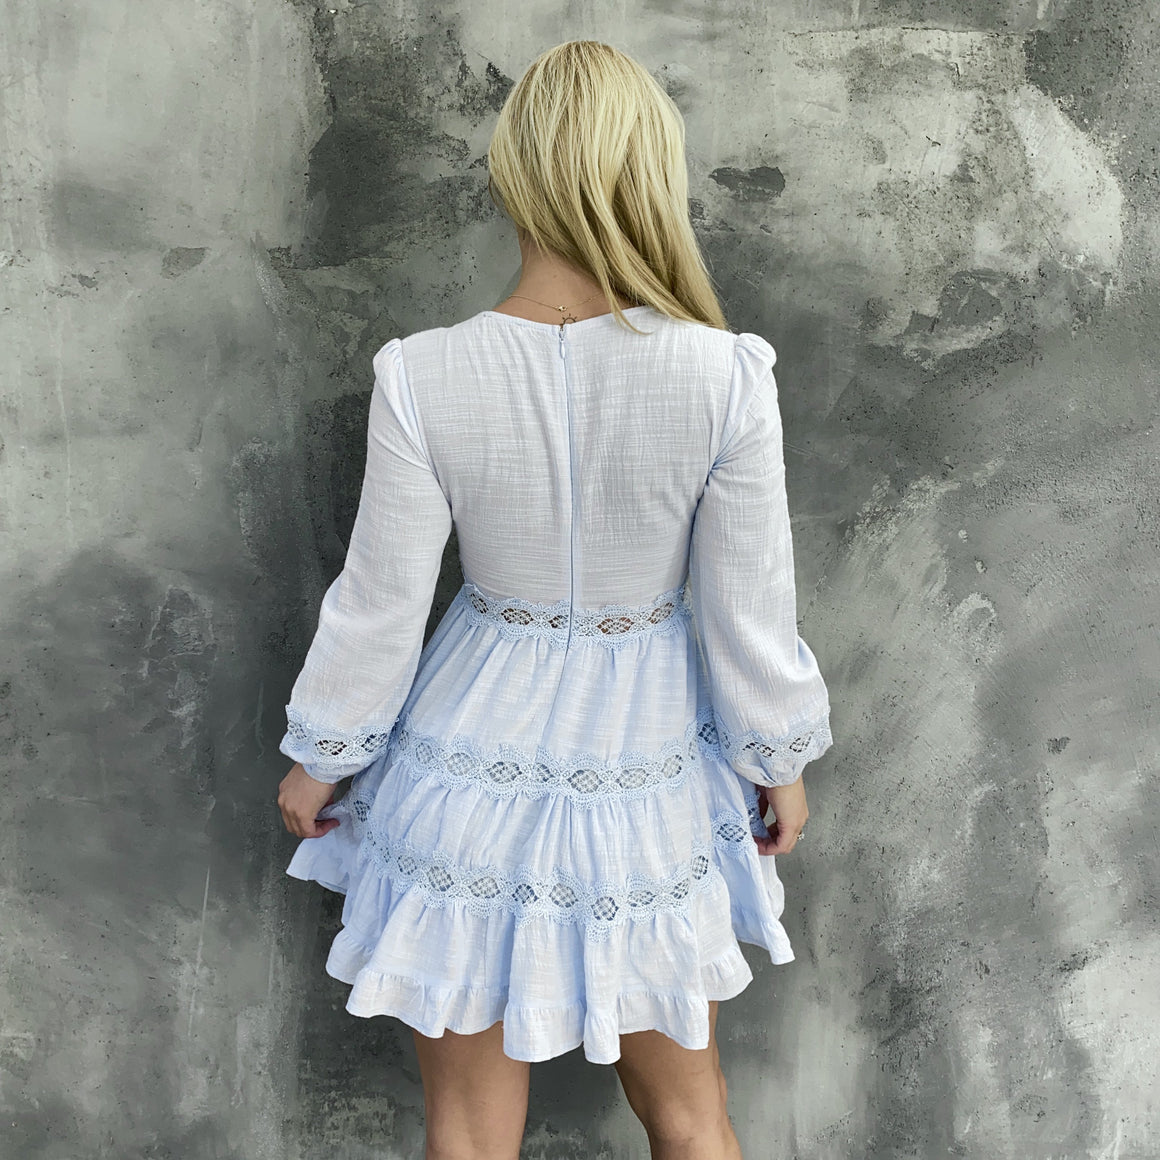 Ruffle & Flow Baby Blue Dress